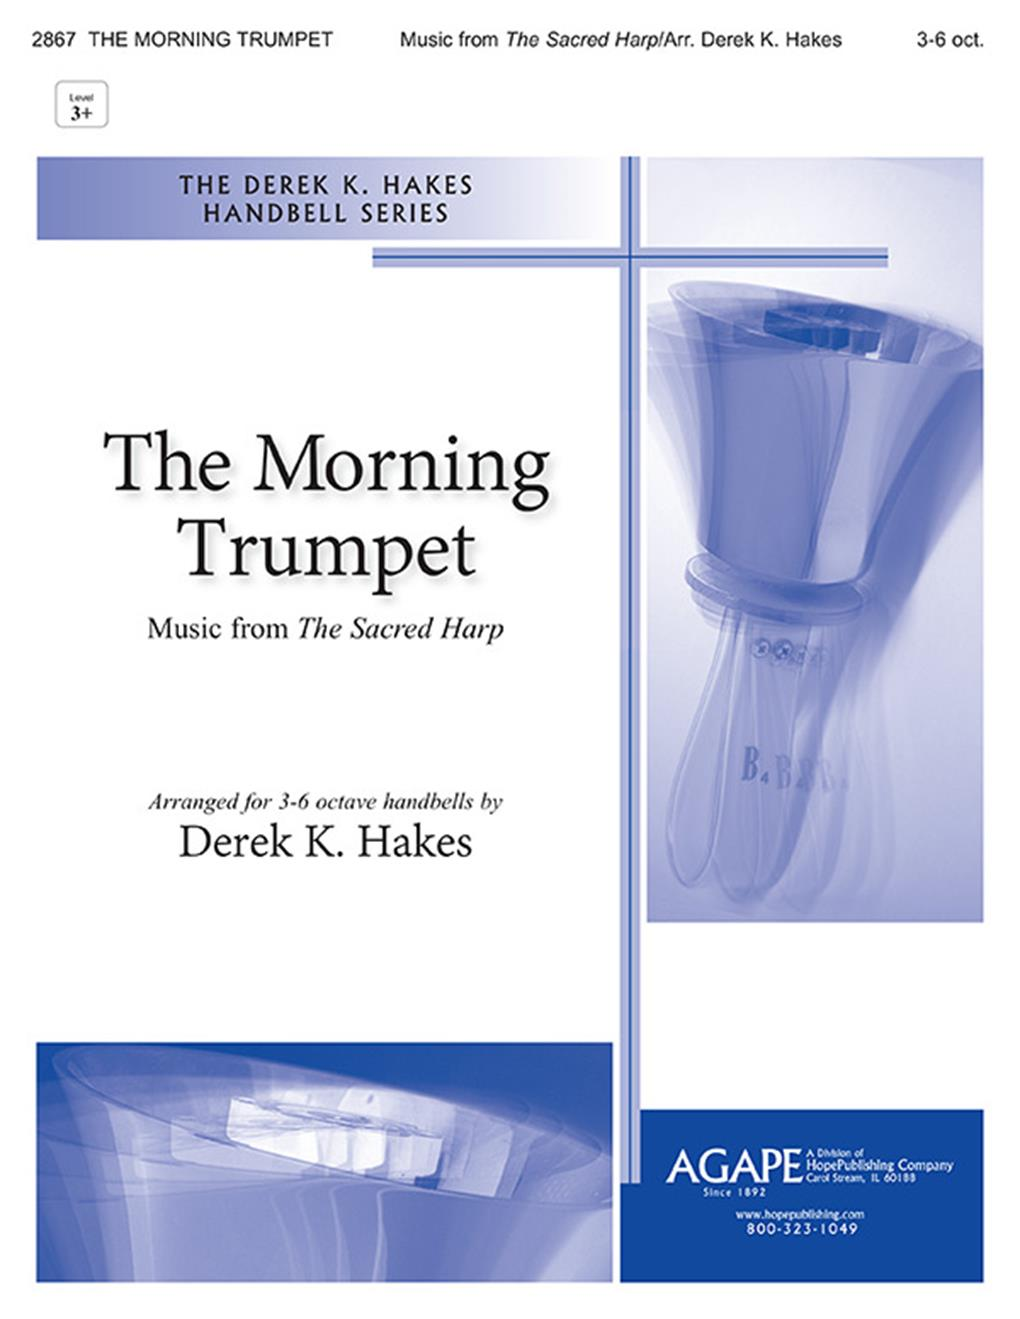 Morning Trumpet The - 3-5 oct. Cover Image